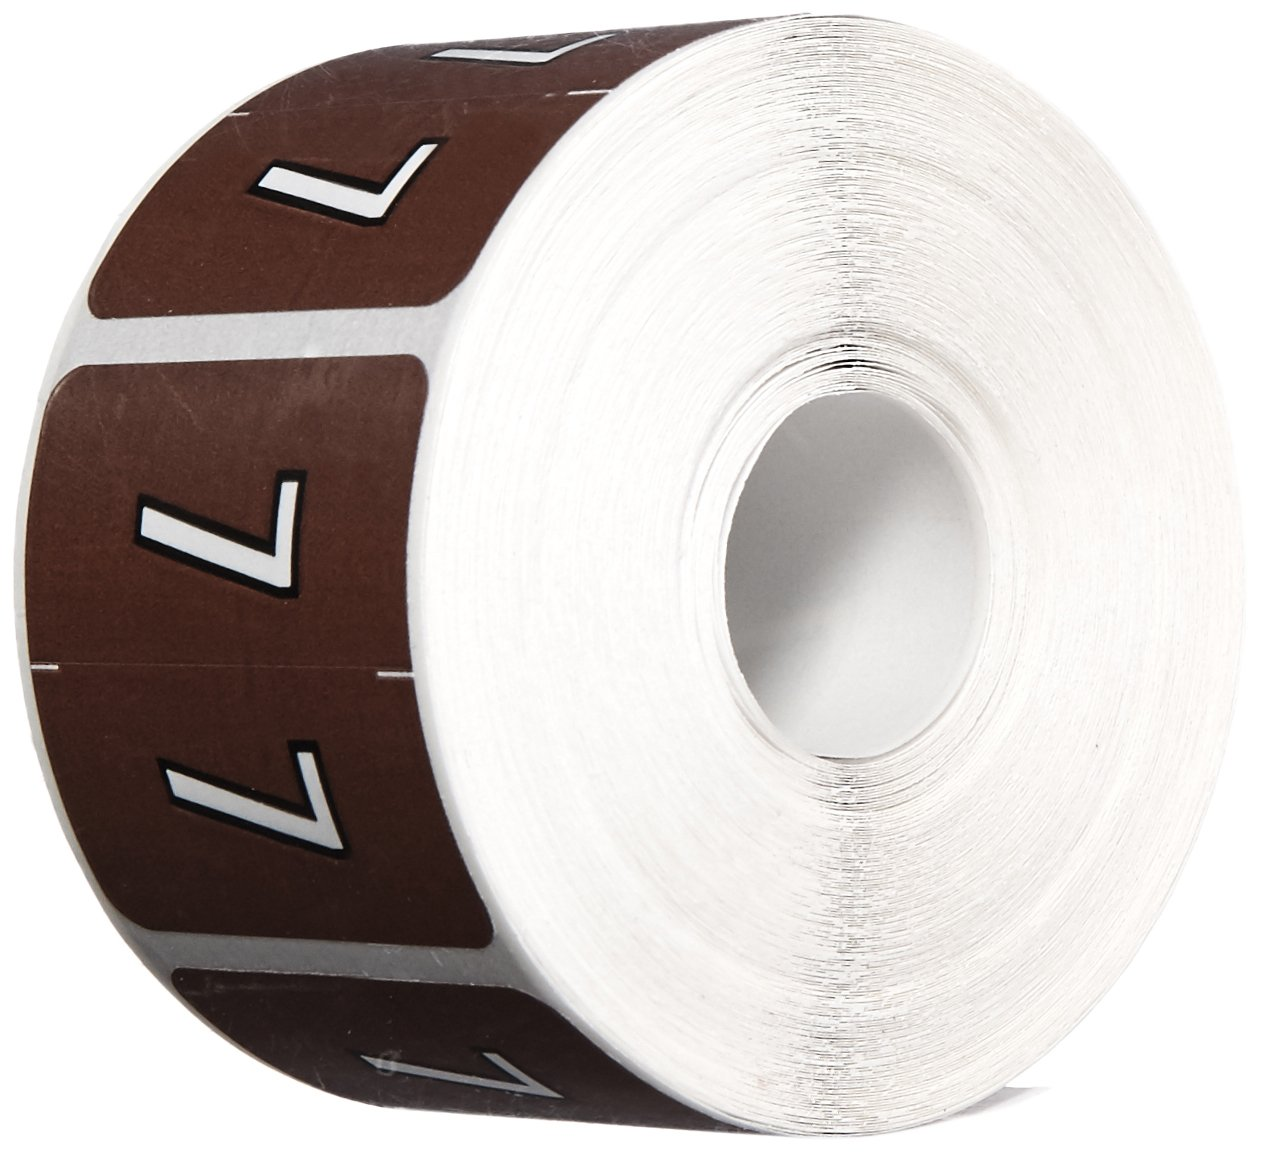 BARKLEY COMPATIBLE BKNM-7 Bknm Color Code Numeric 7'' Label, 1-1/2 x 1-1/2, Brown Permanent (Pack of 500)